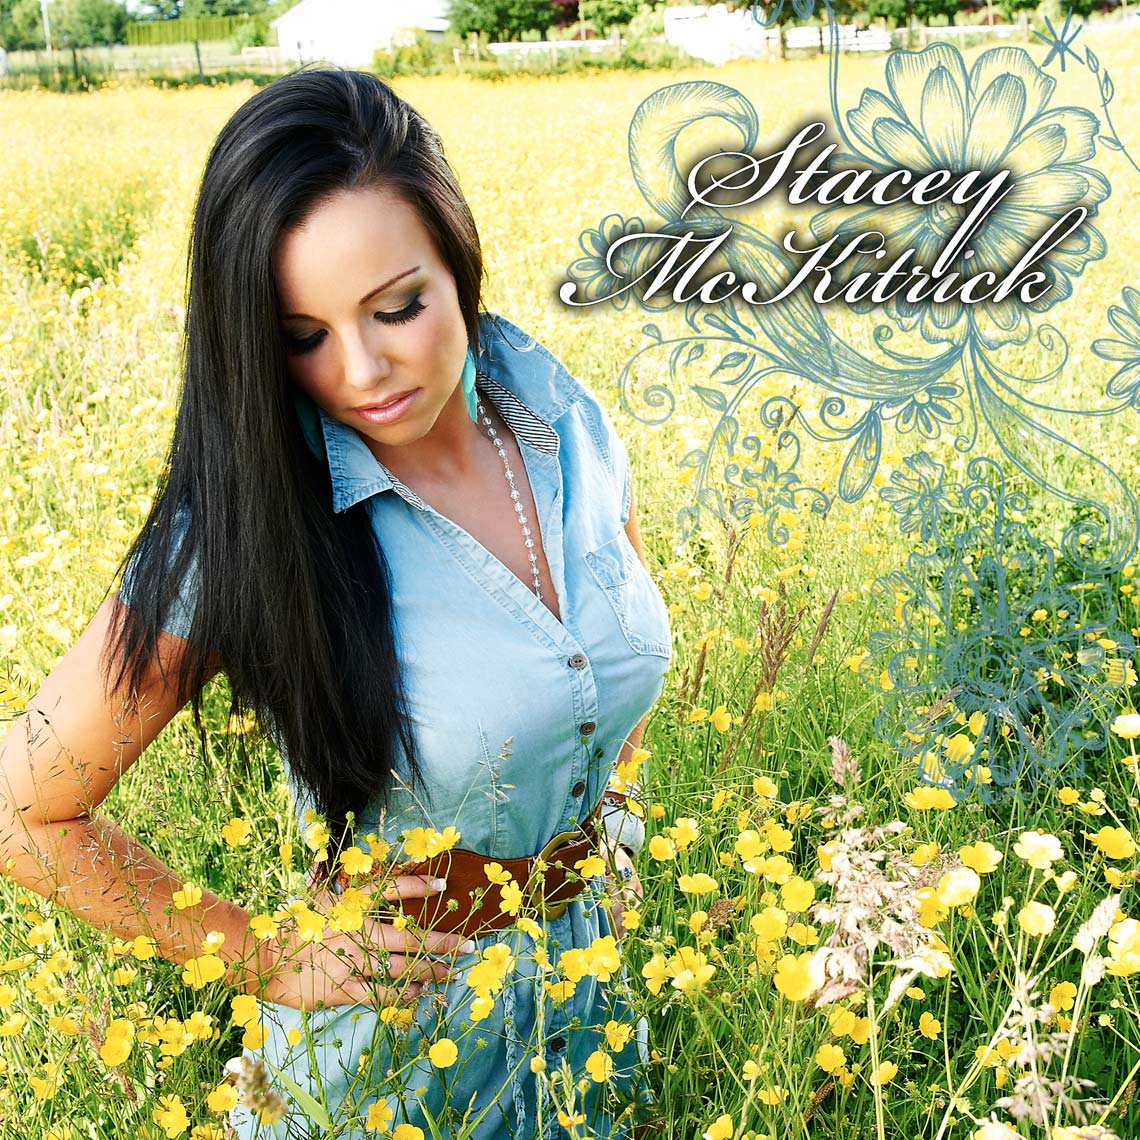 Stacey McKitrick - CD Cover